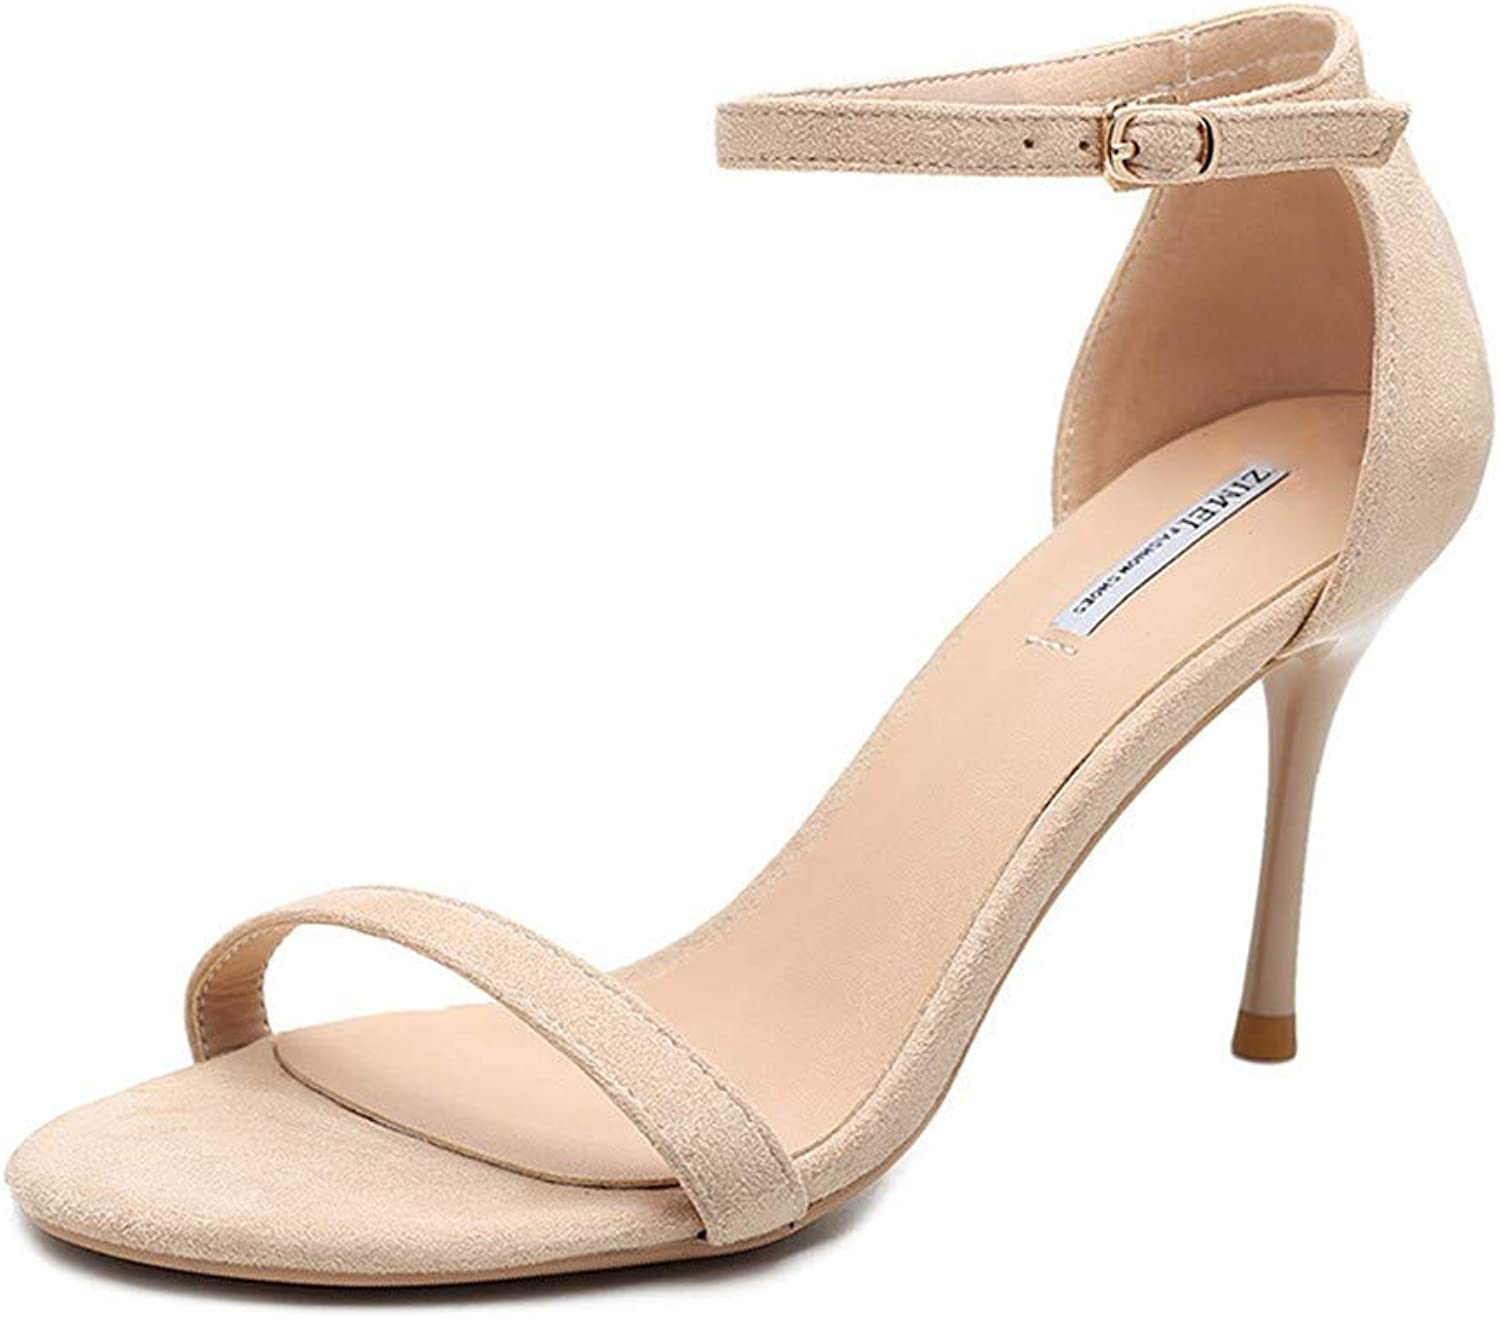 Top Shishang Apricot Button with high Heel Stiletto with Wild Open Toe Sandals